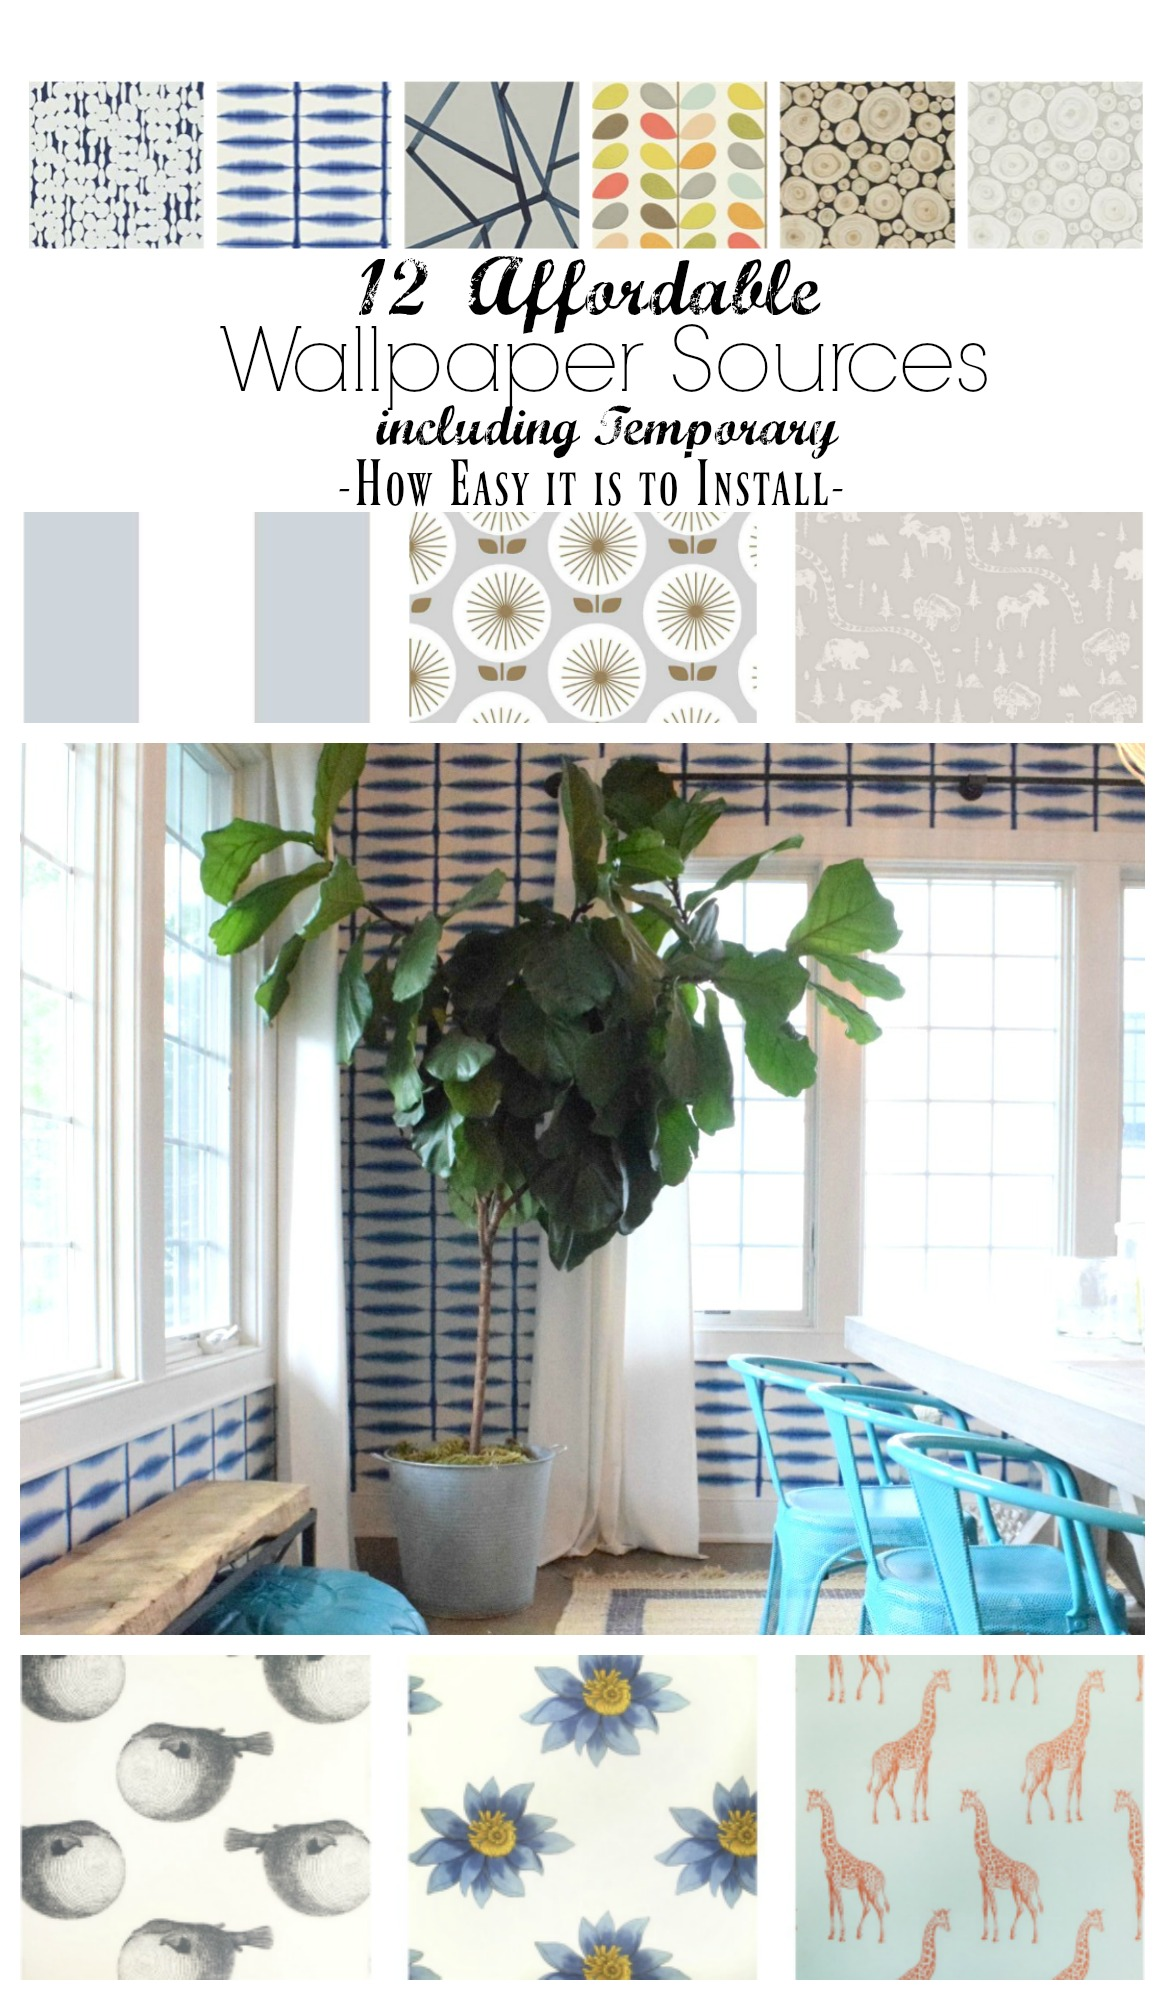 Wallpaper Sources and Temporary Paper and How to Install